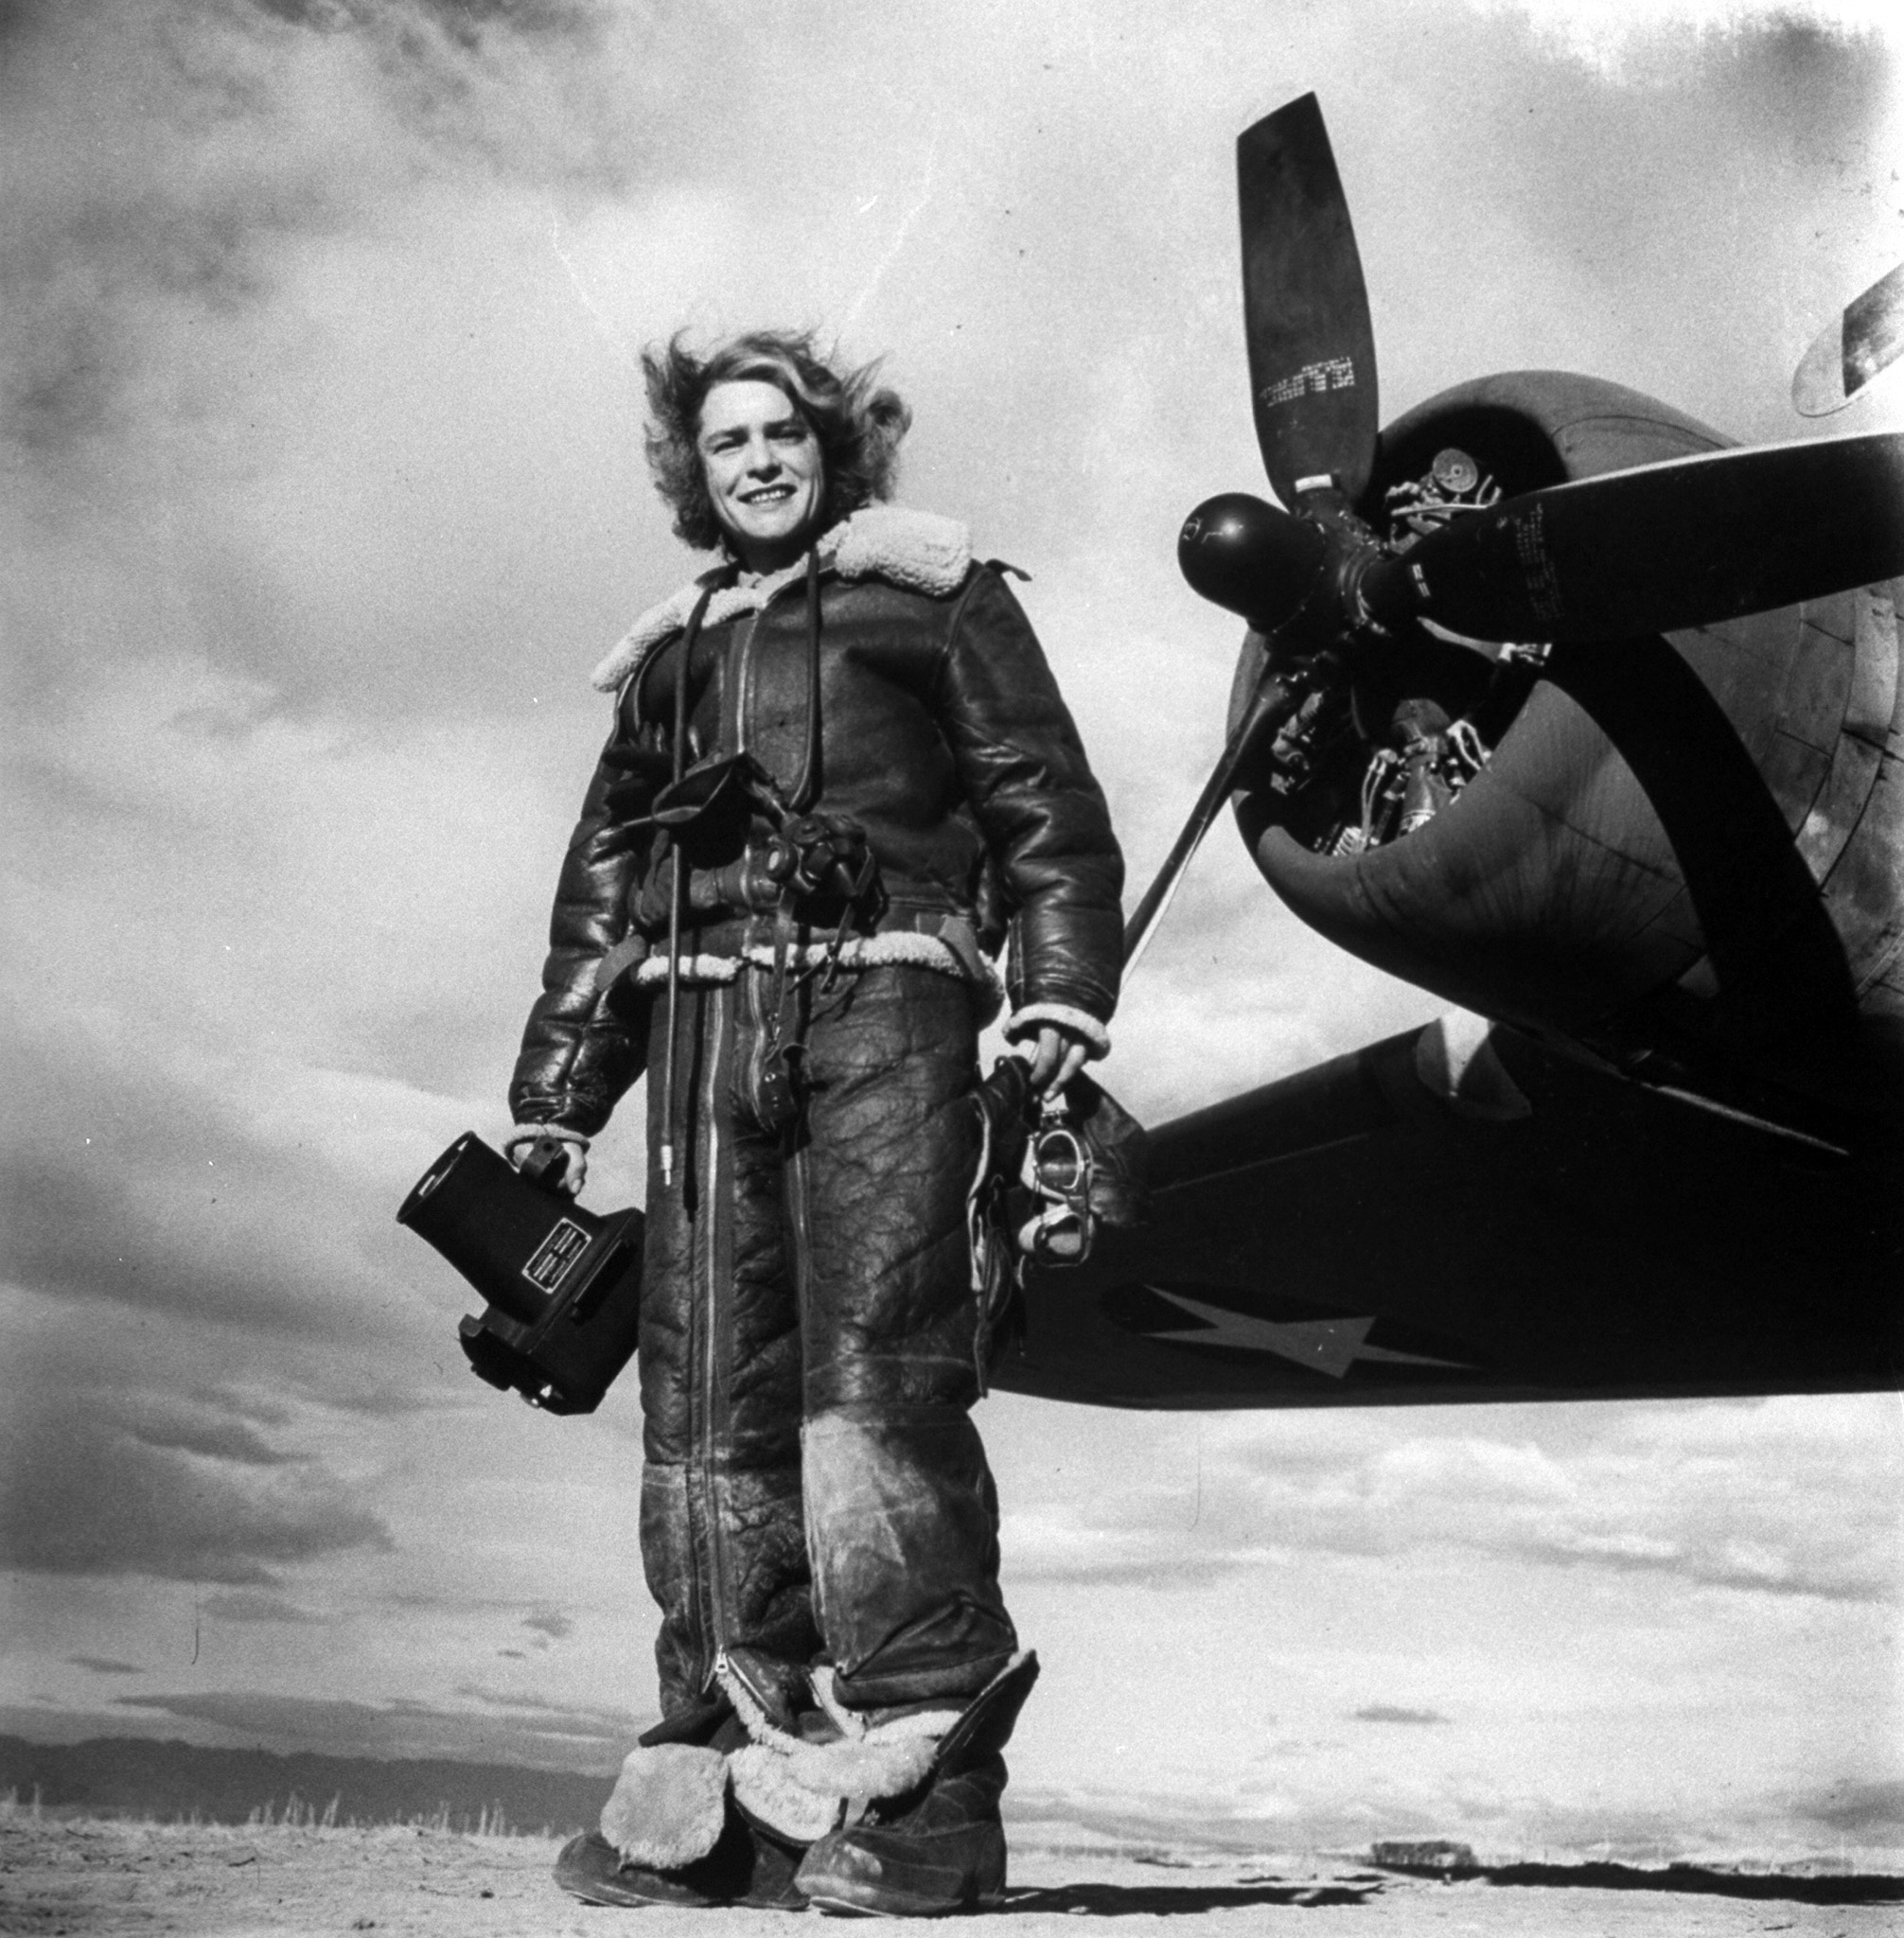 <b>Caption from LIFE.</b> Miss Bourke-White in regalia of air photographer.